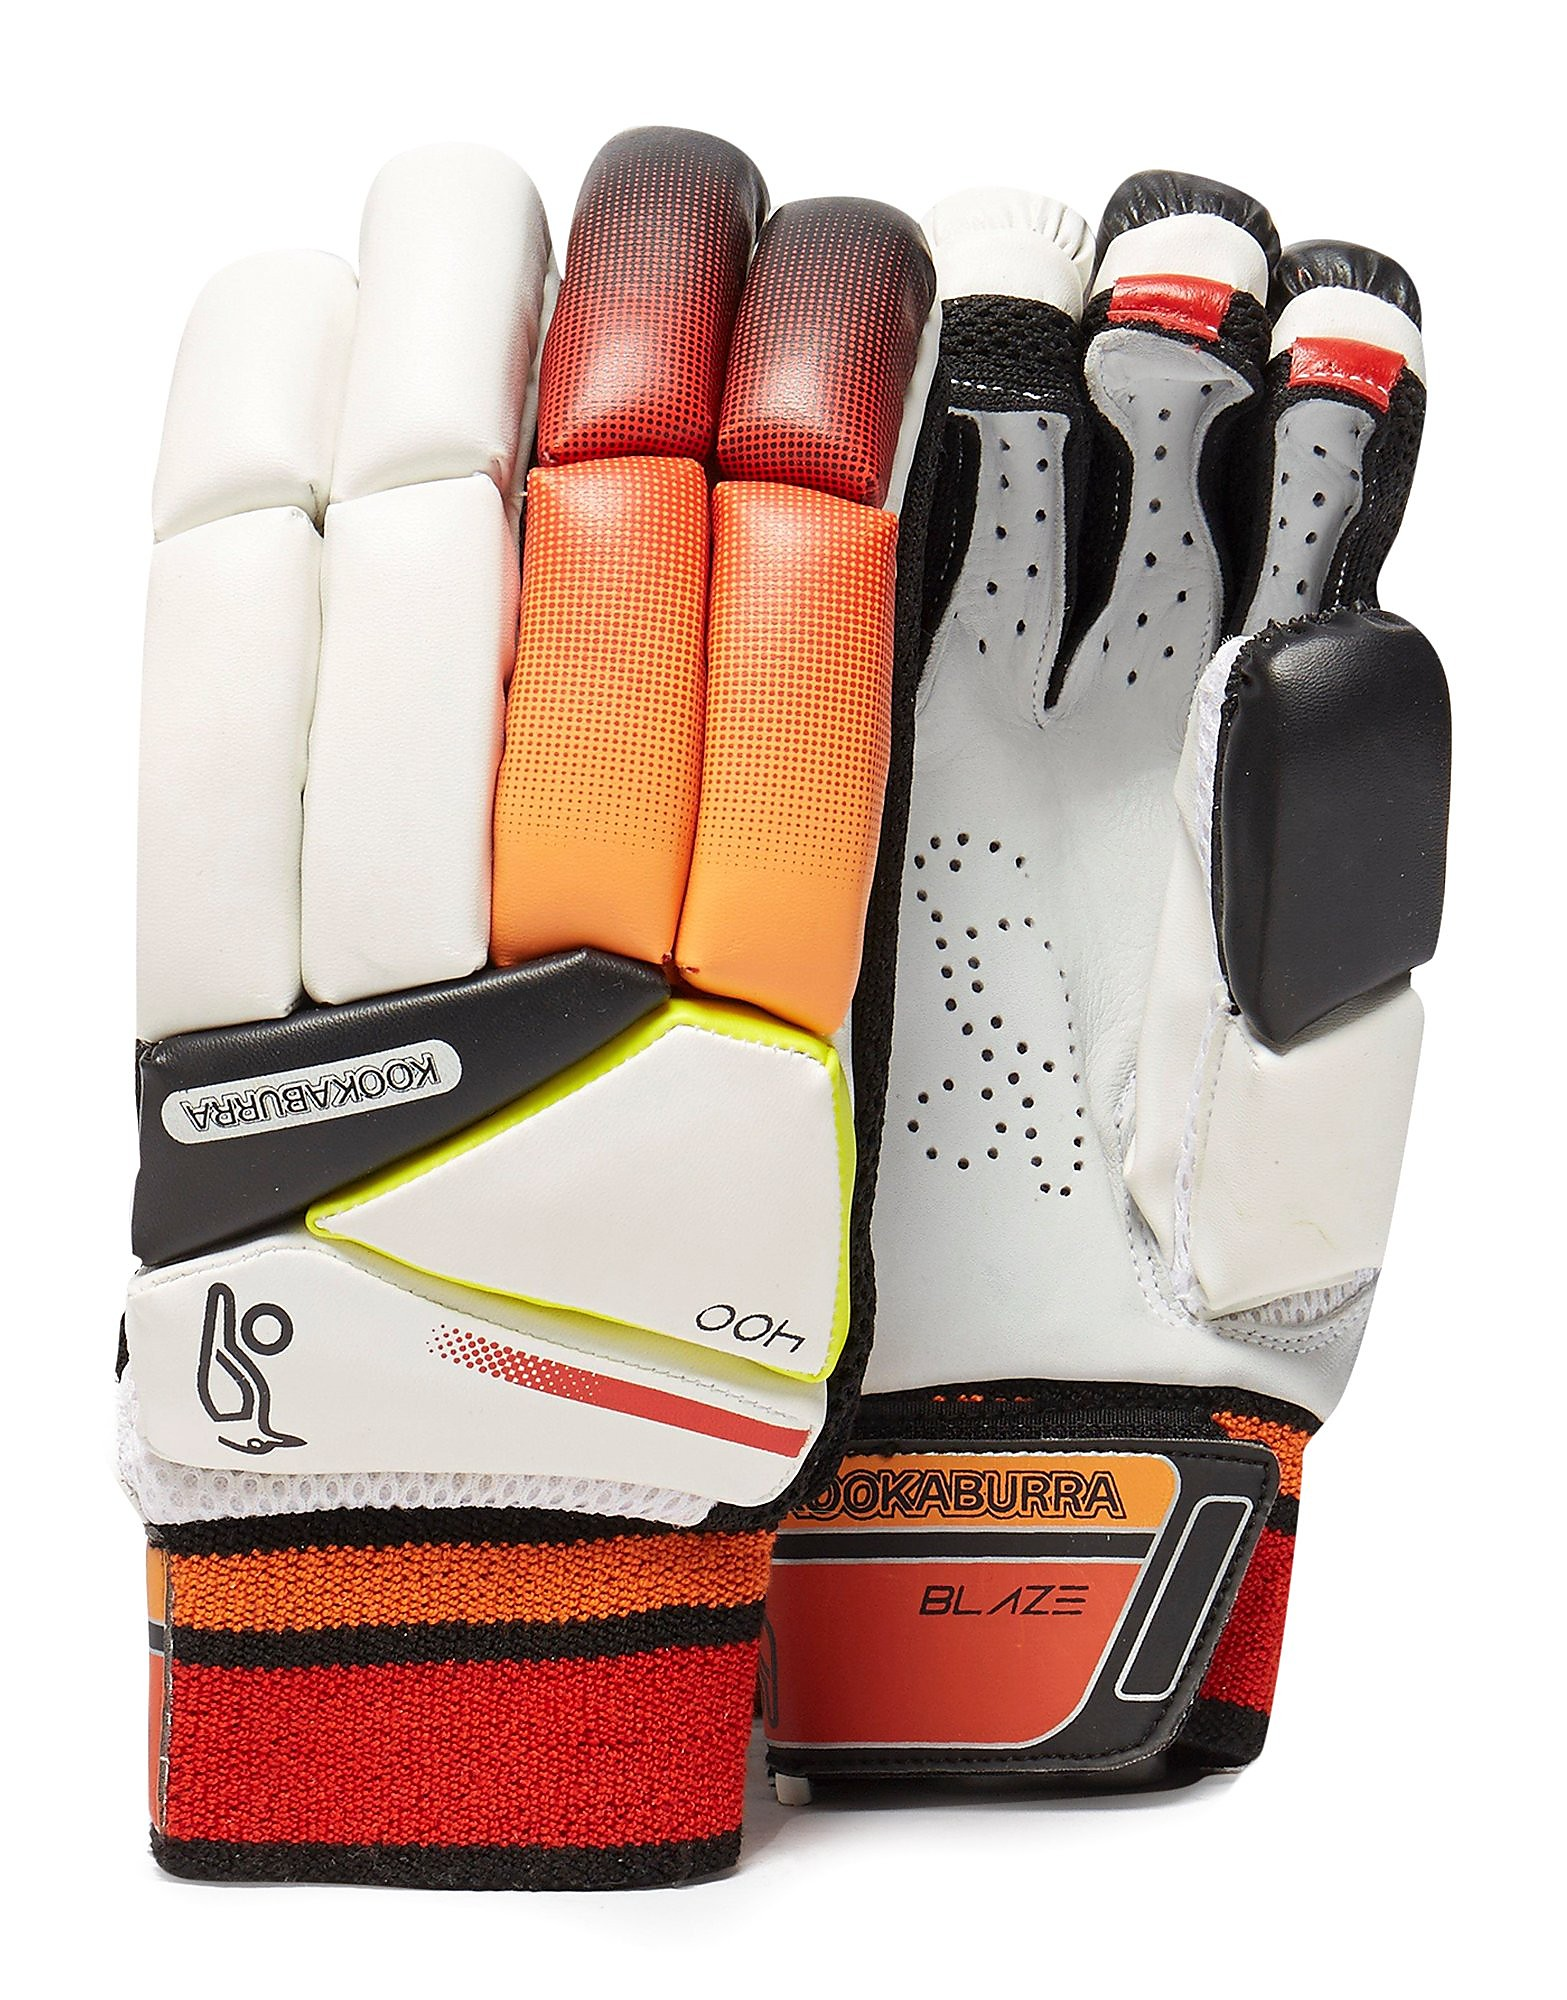 Kookaburra Blaze 400 Men's Batting Gloves